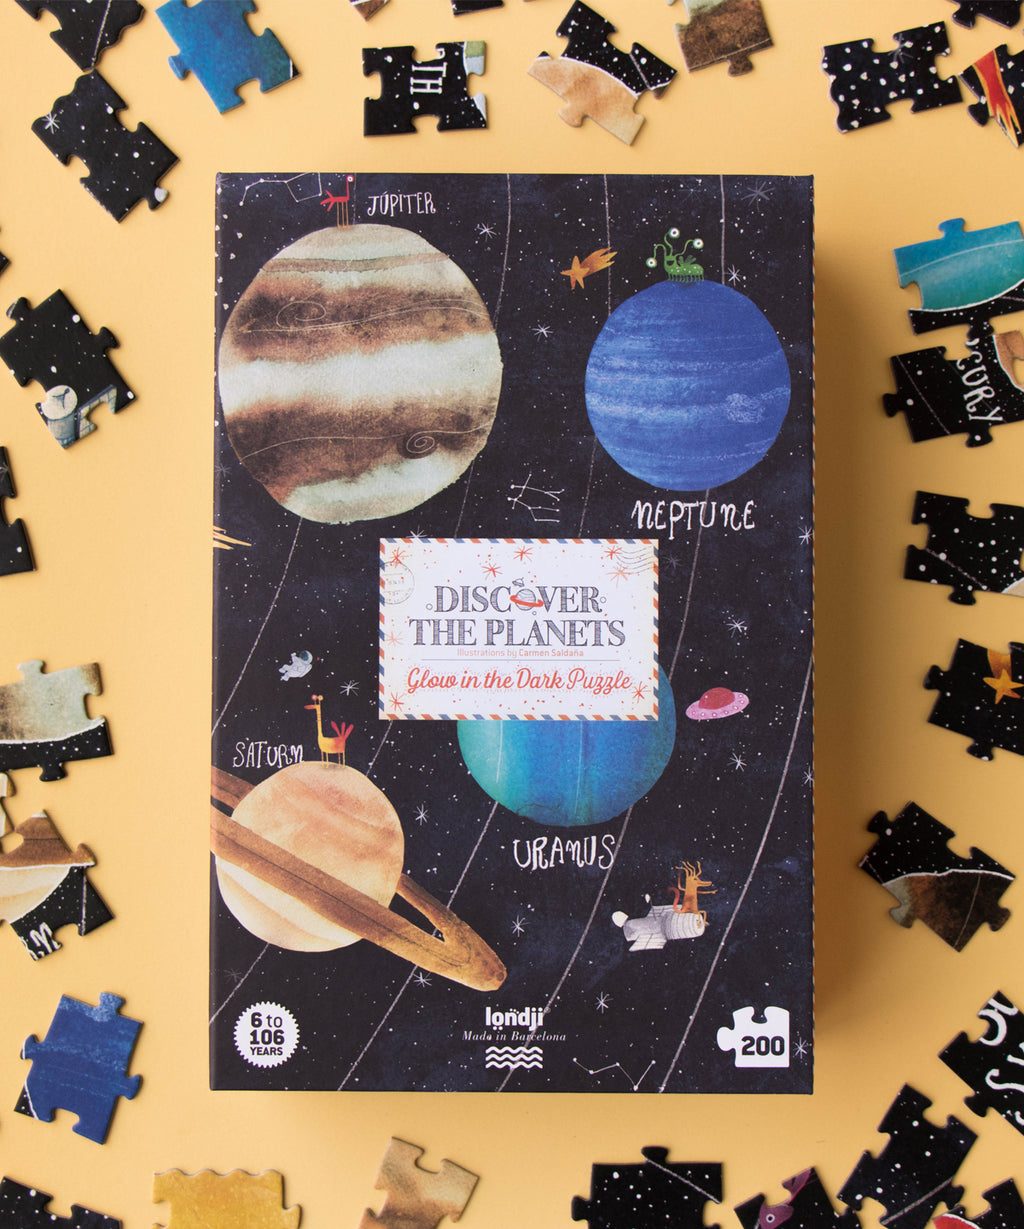 LONDJI - Discover The Planets Glow In the Dark Puzzle